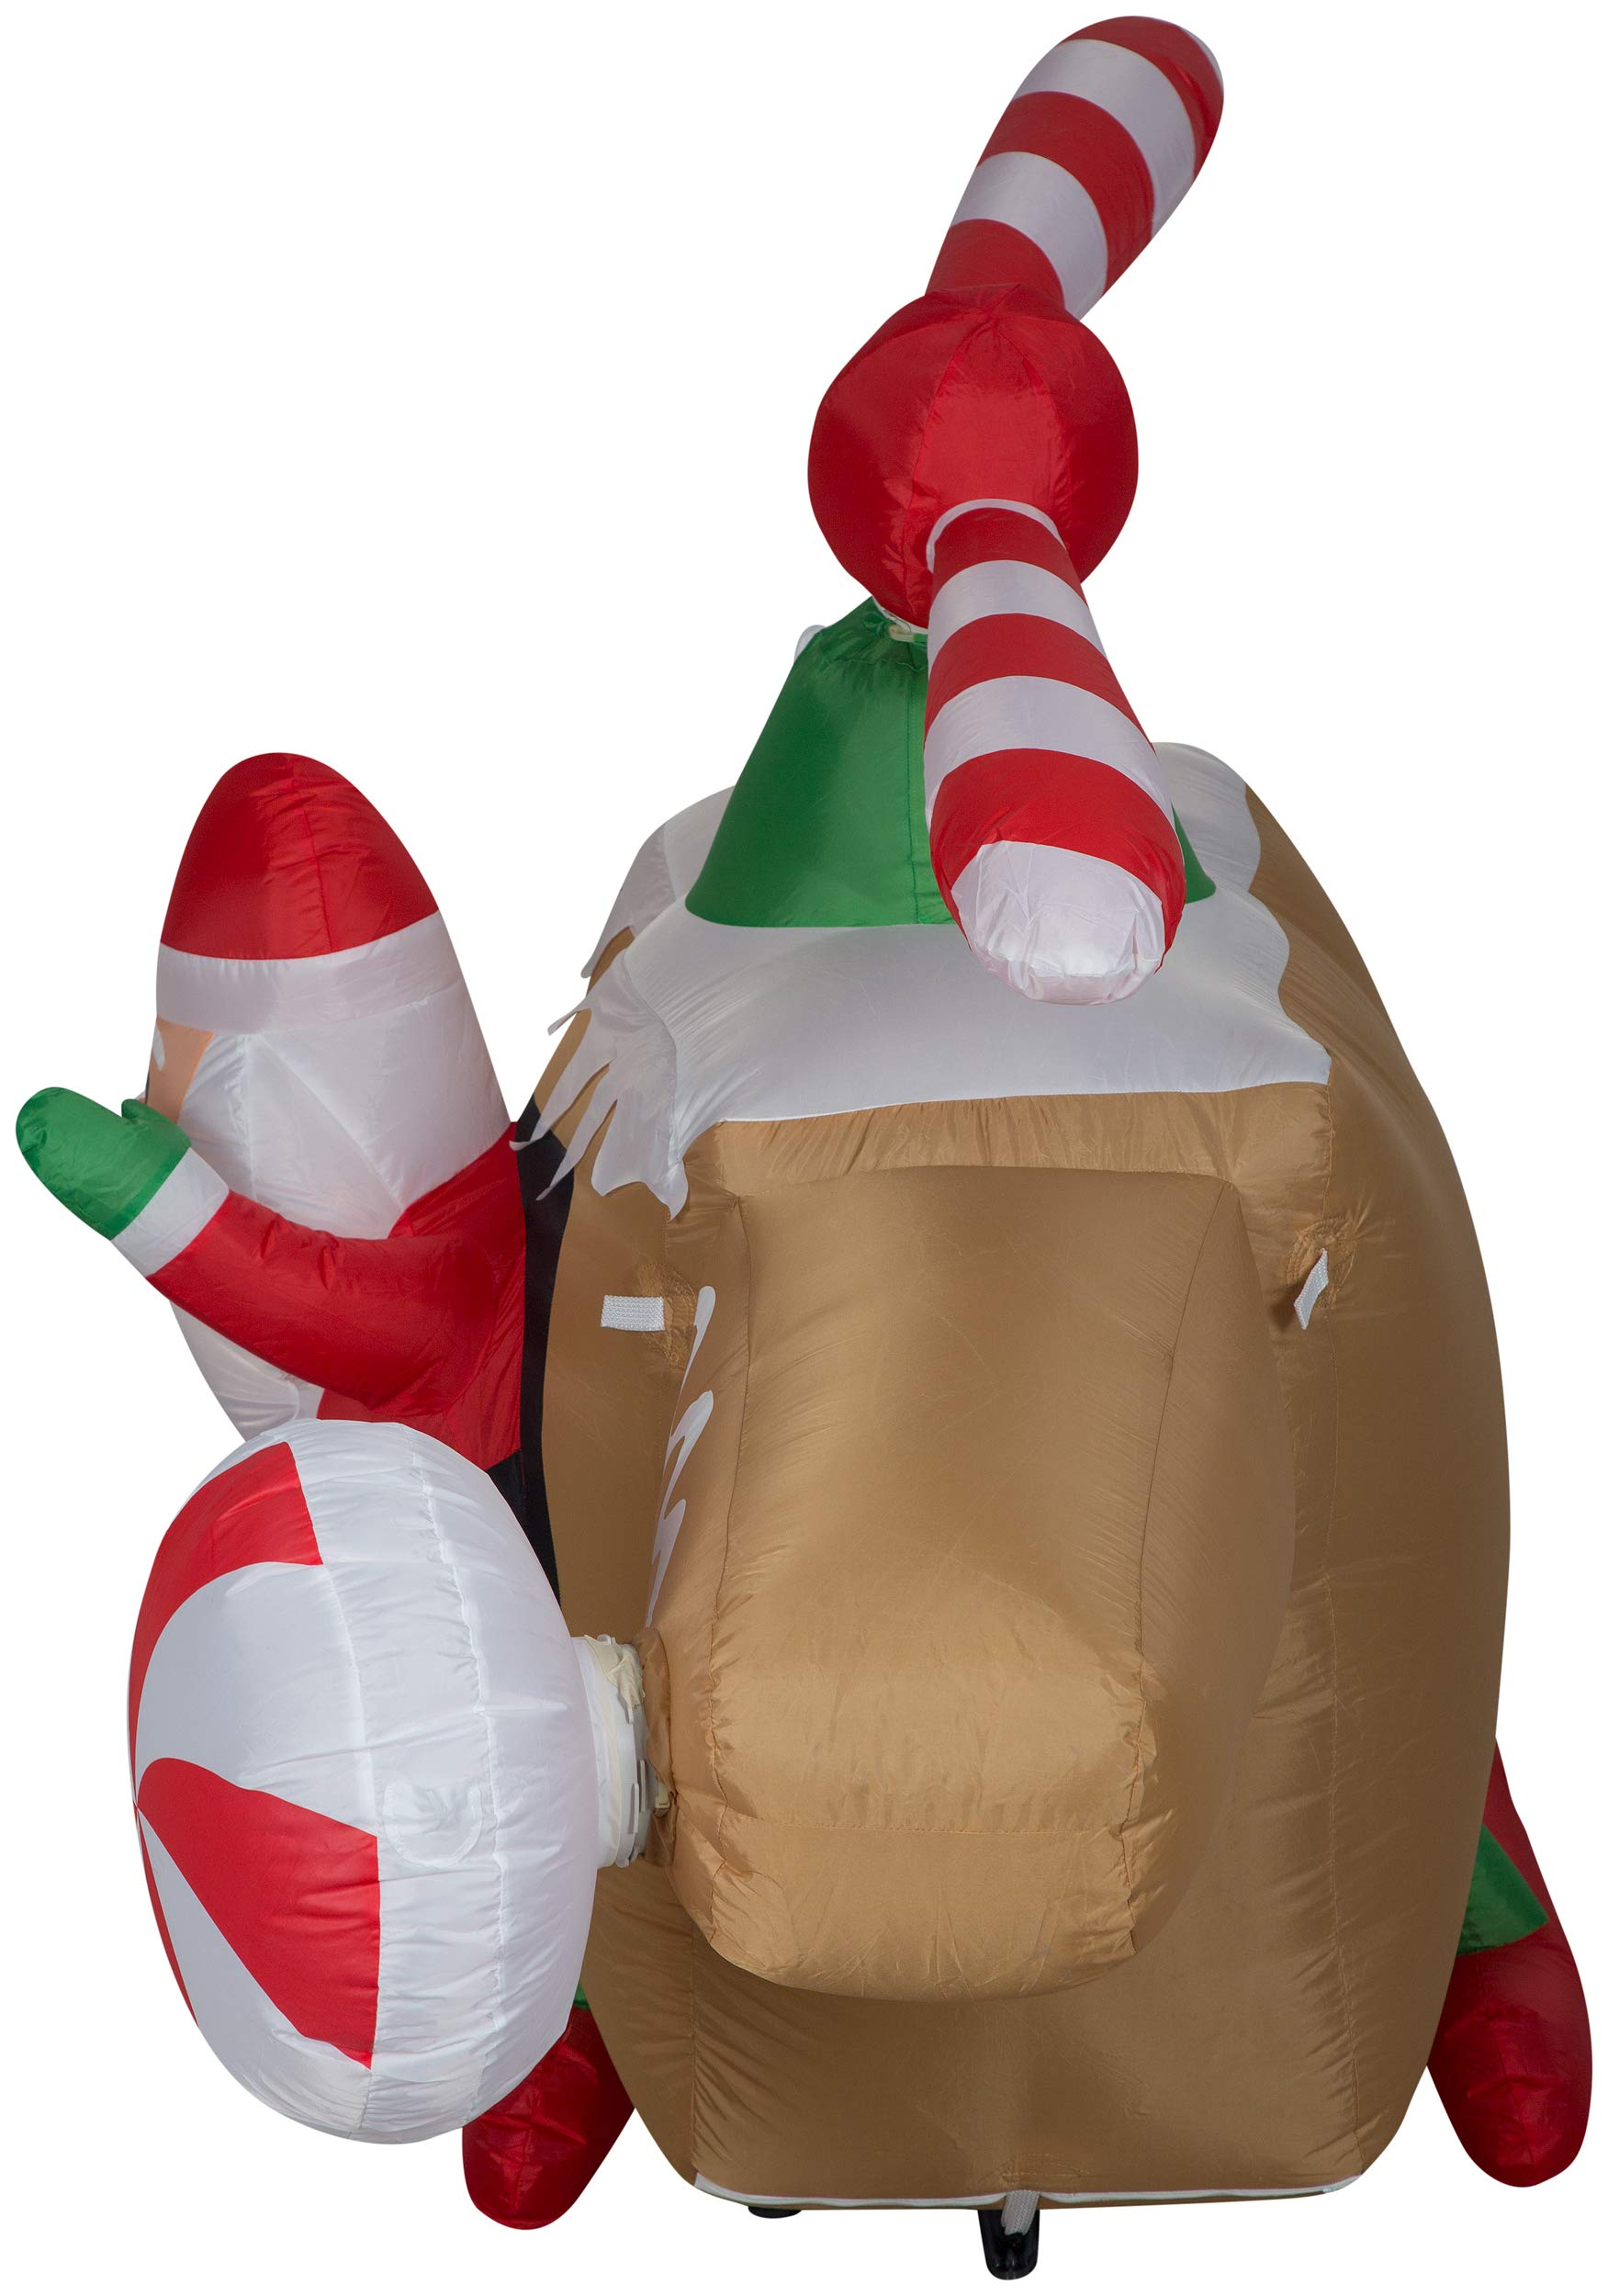 Gemmy 36678 Animated Airblown Gingerbread Helicopter Christmas Inflatable 4FT TALL x8 FT LONG